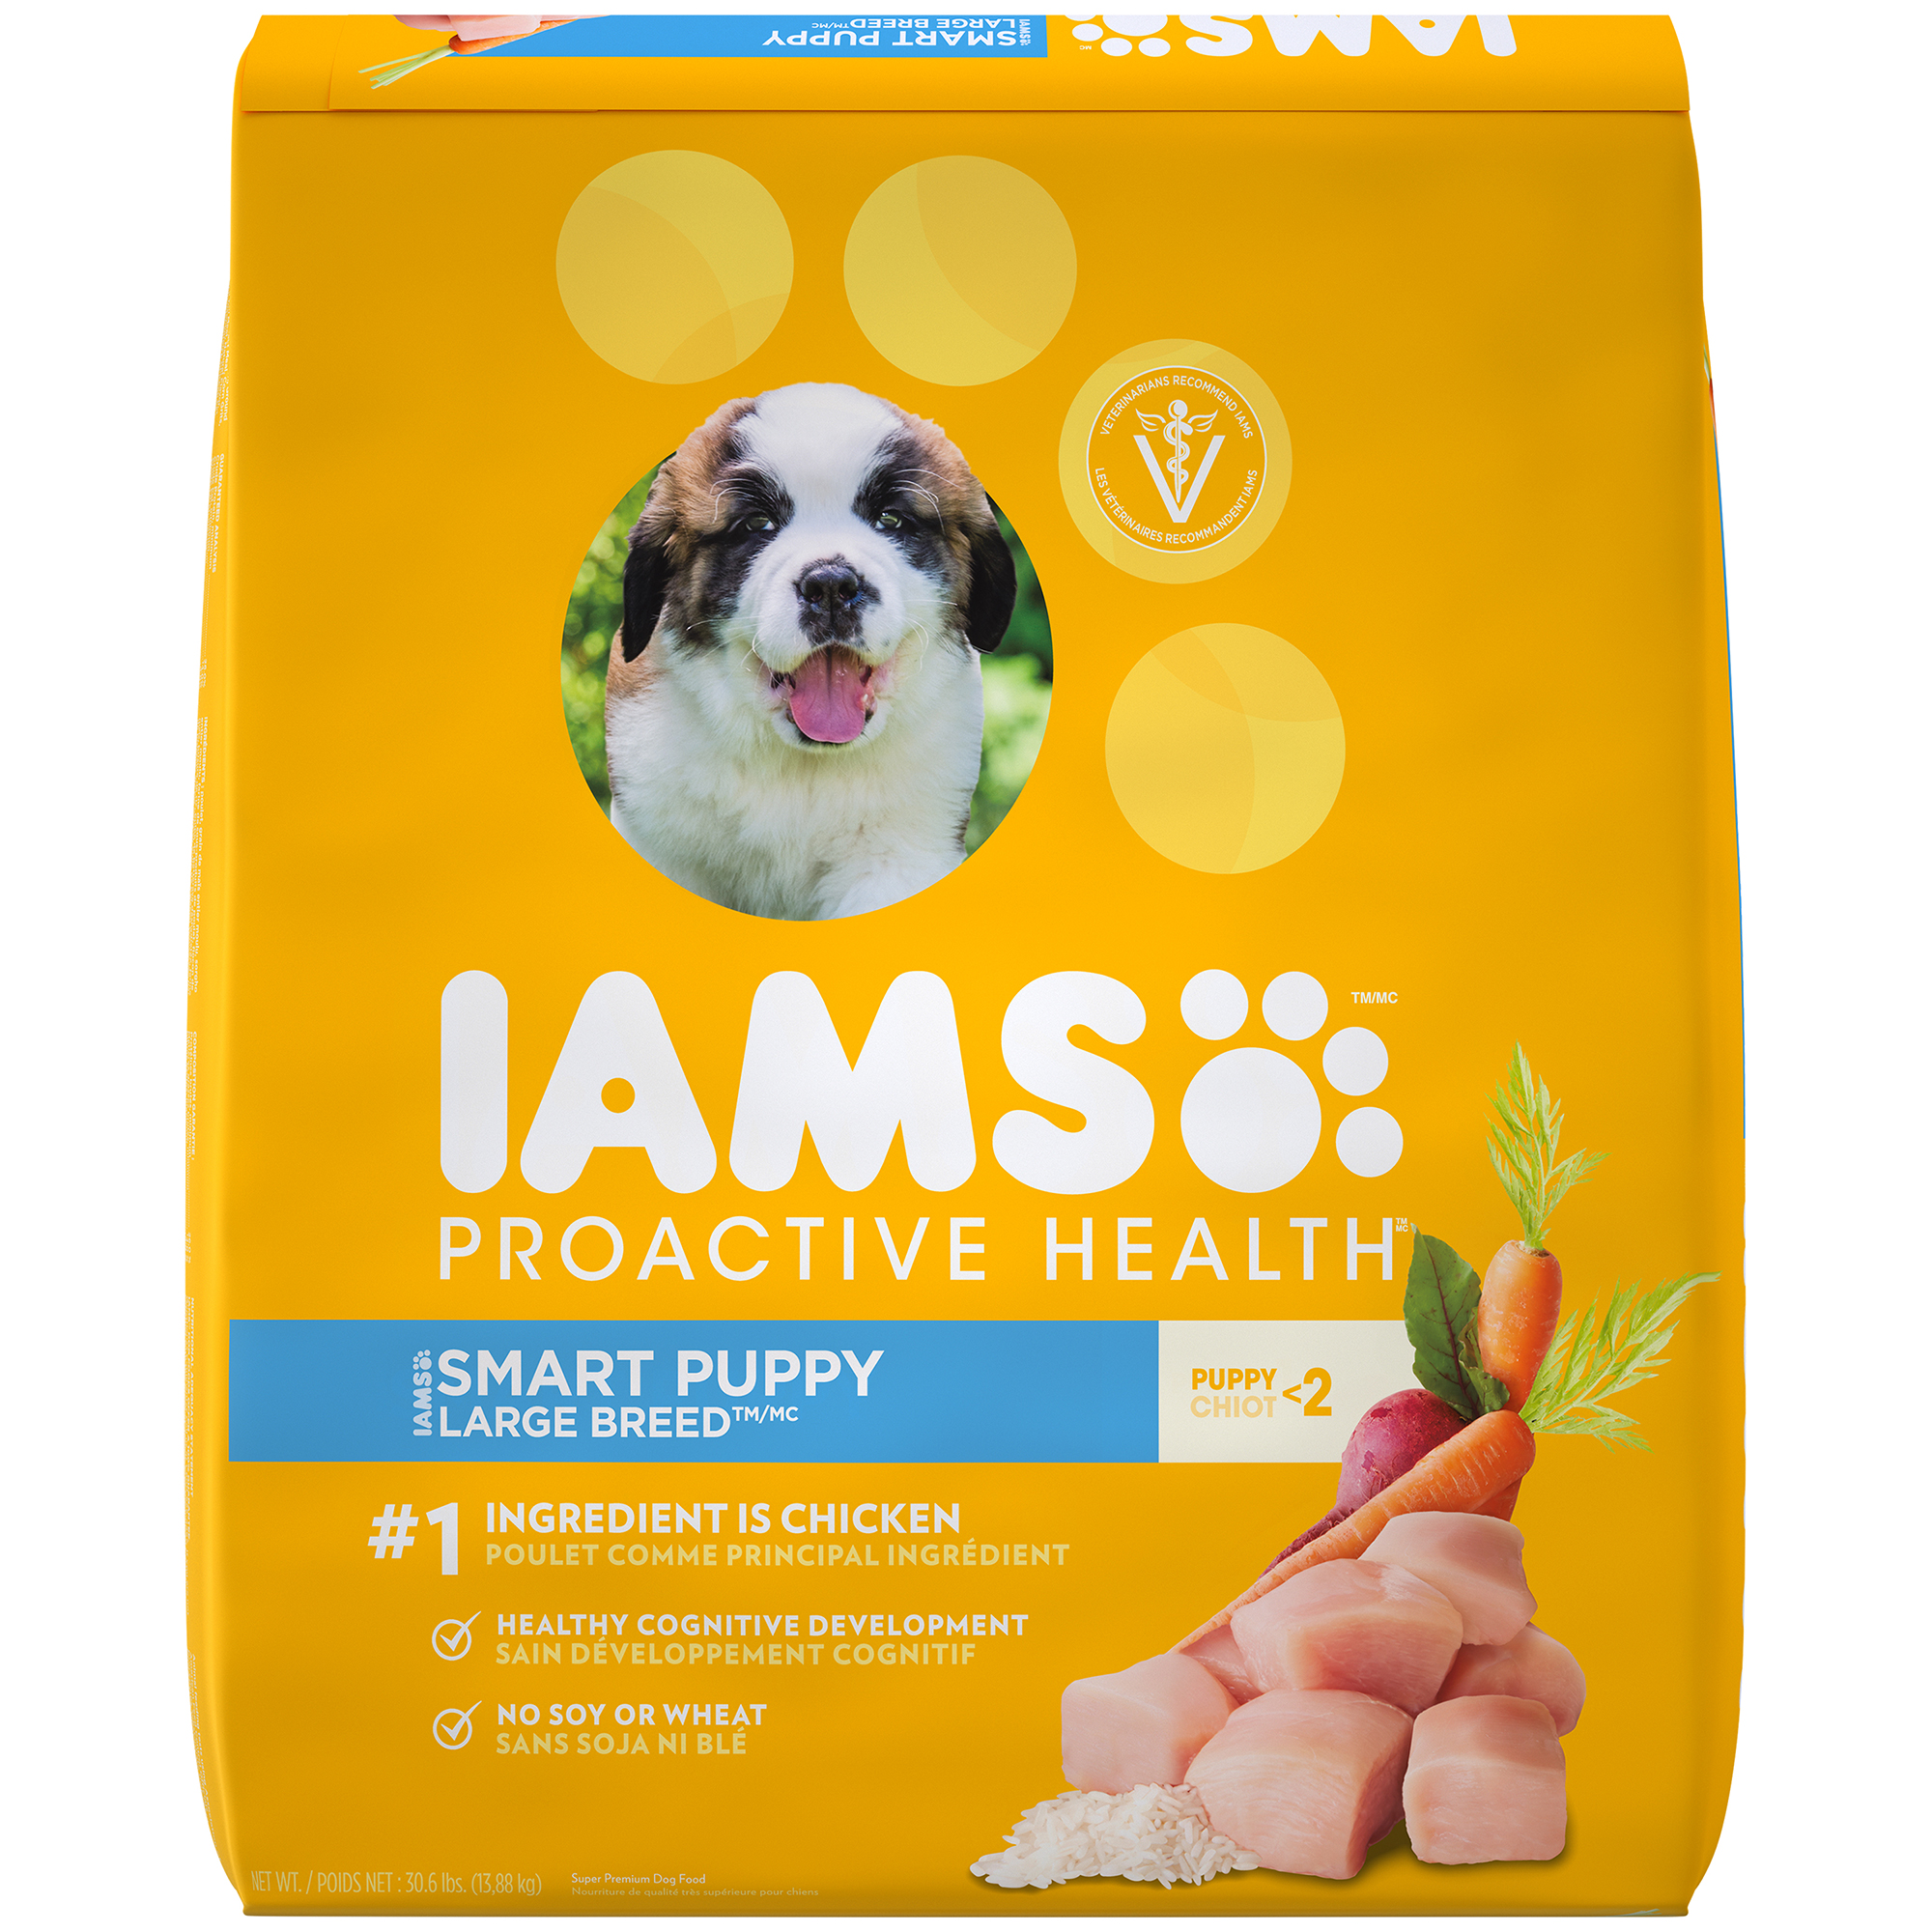 Iams Proactive Health Smart Puppy Dry Dog Food, Chicken, 30 Lb